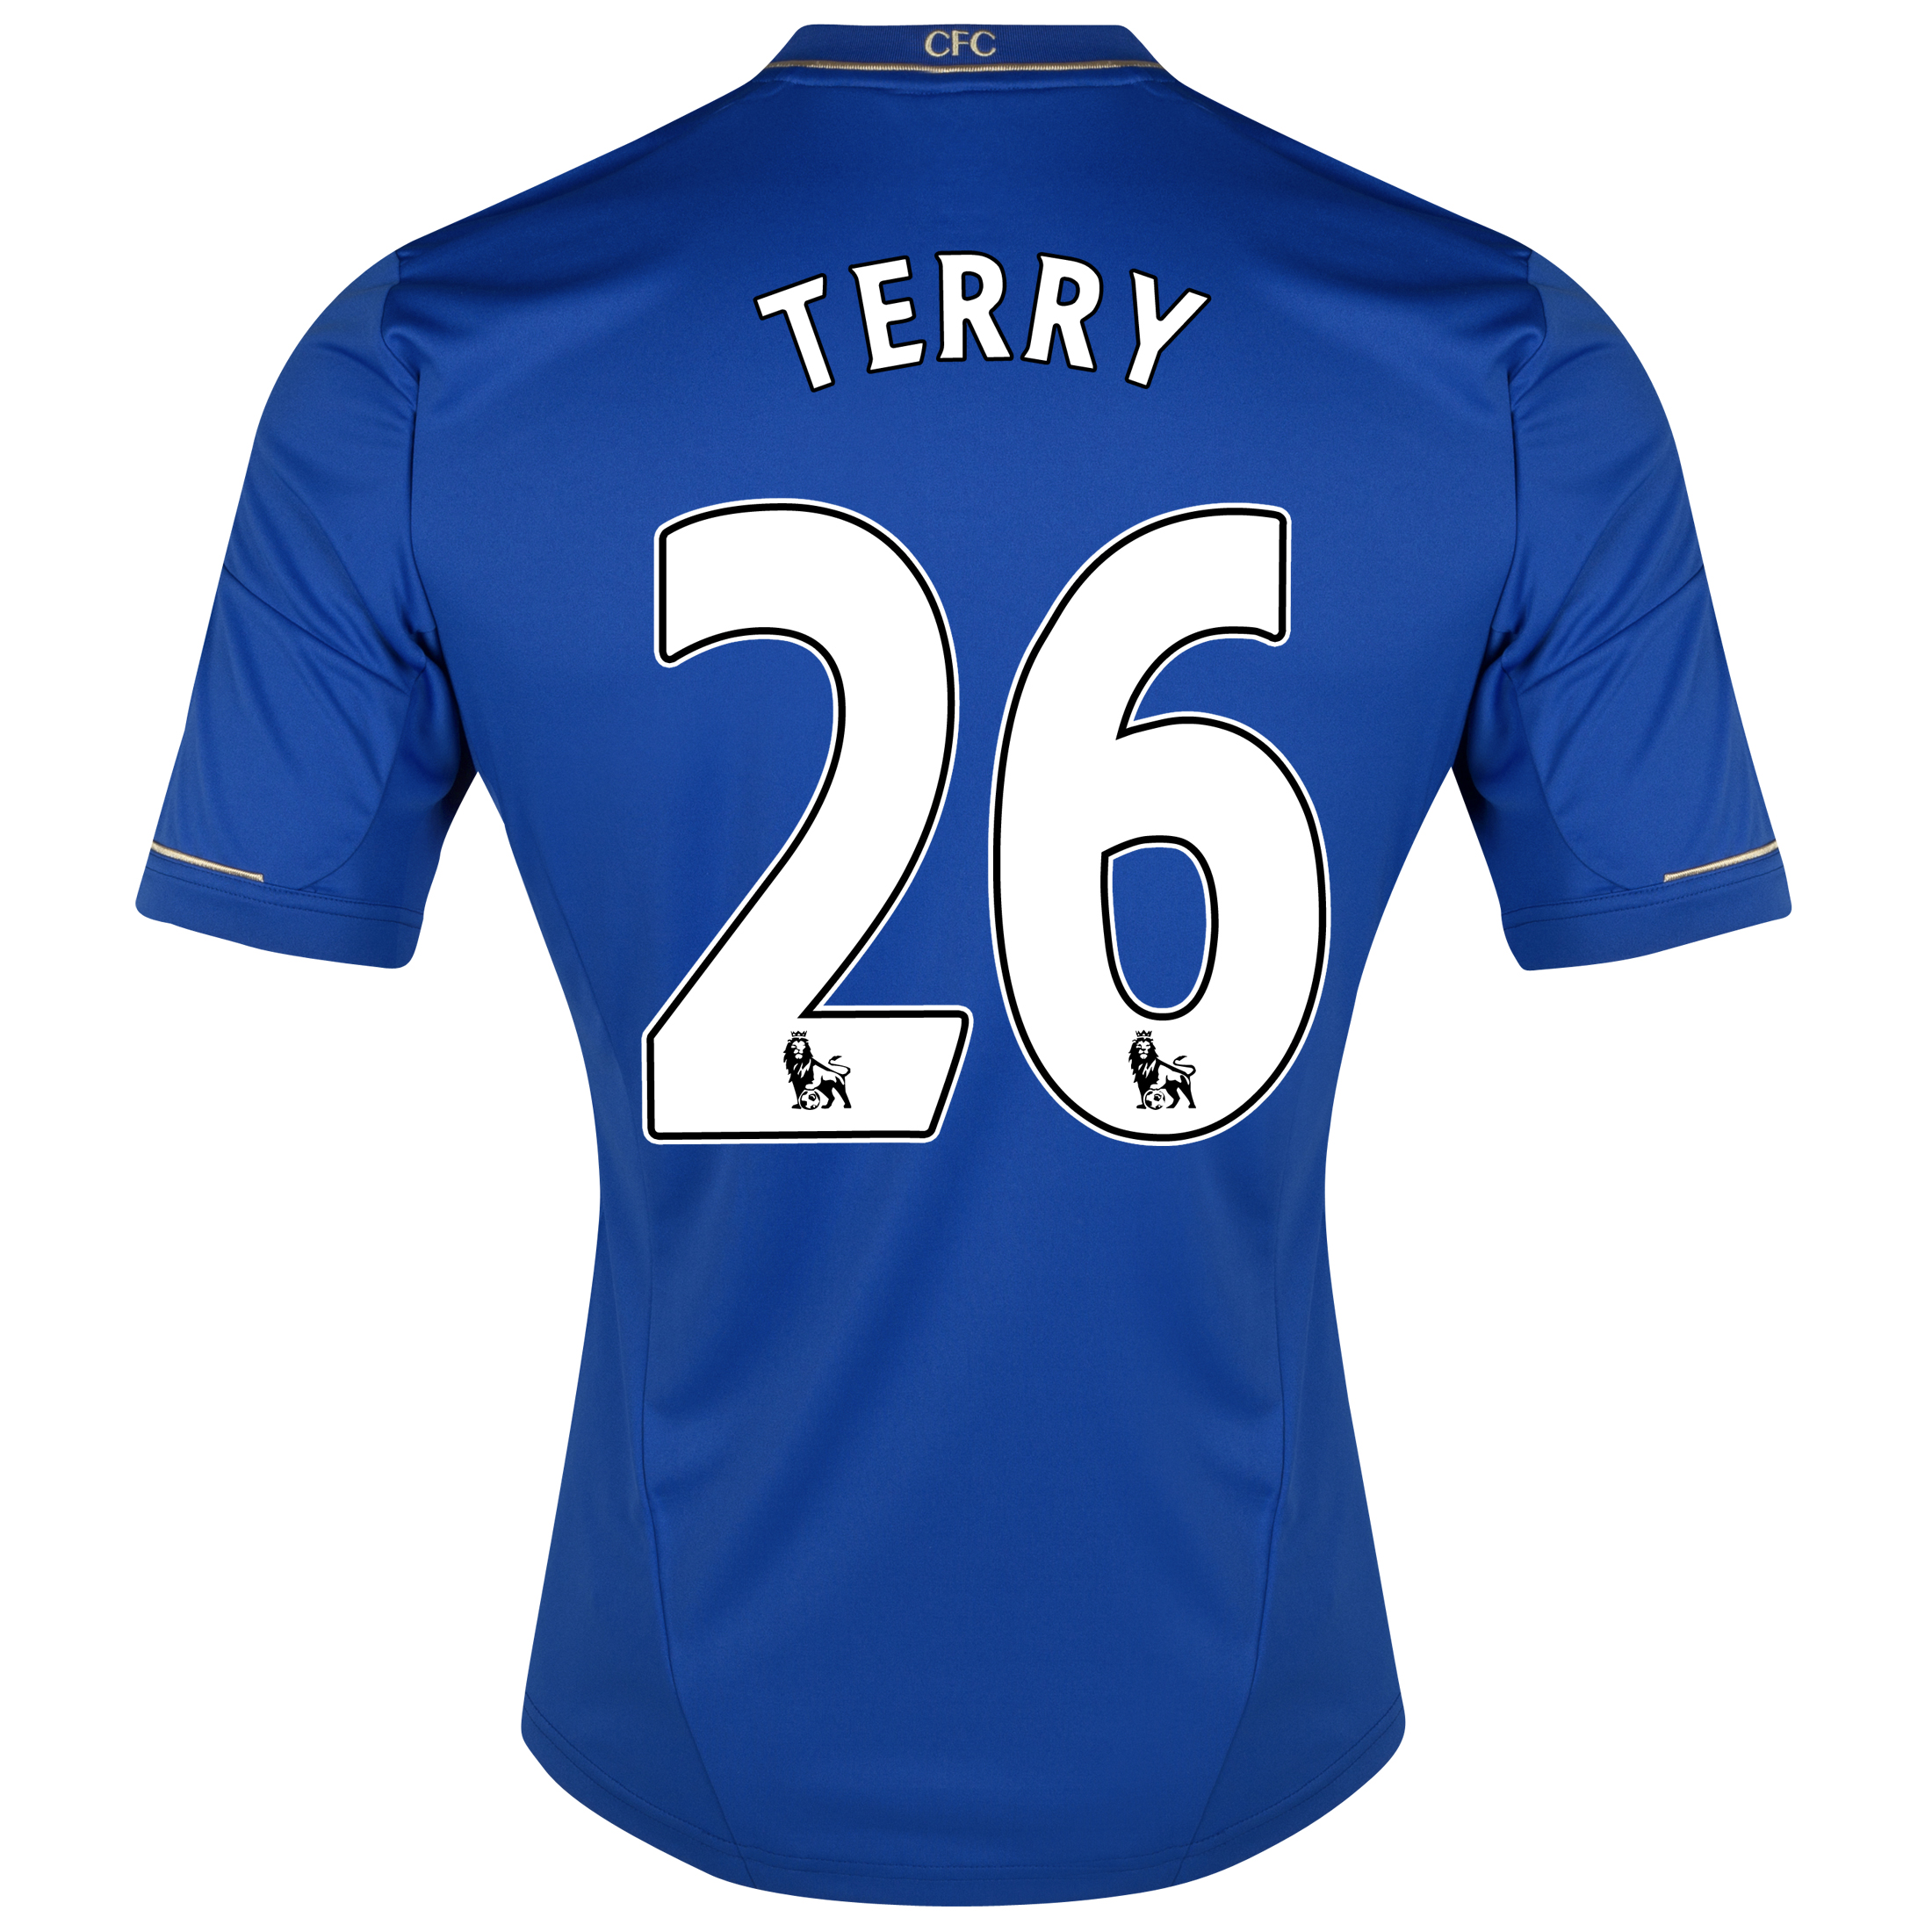 Chelsea Home Shirt 2012/13 - Kids with Terry 26 printing